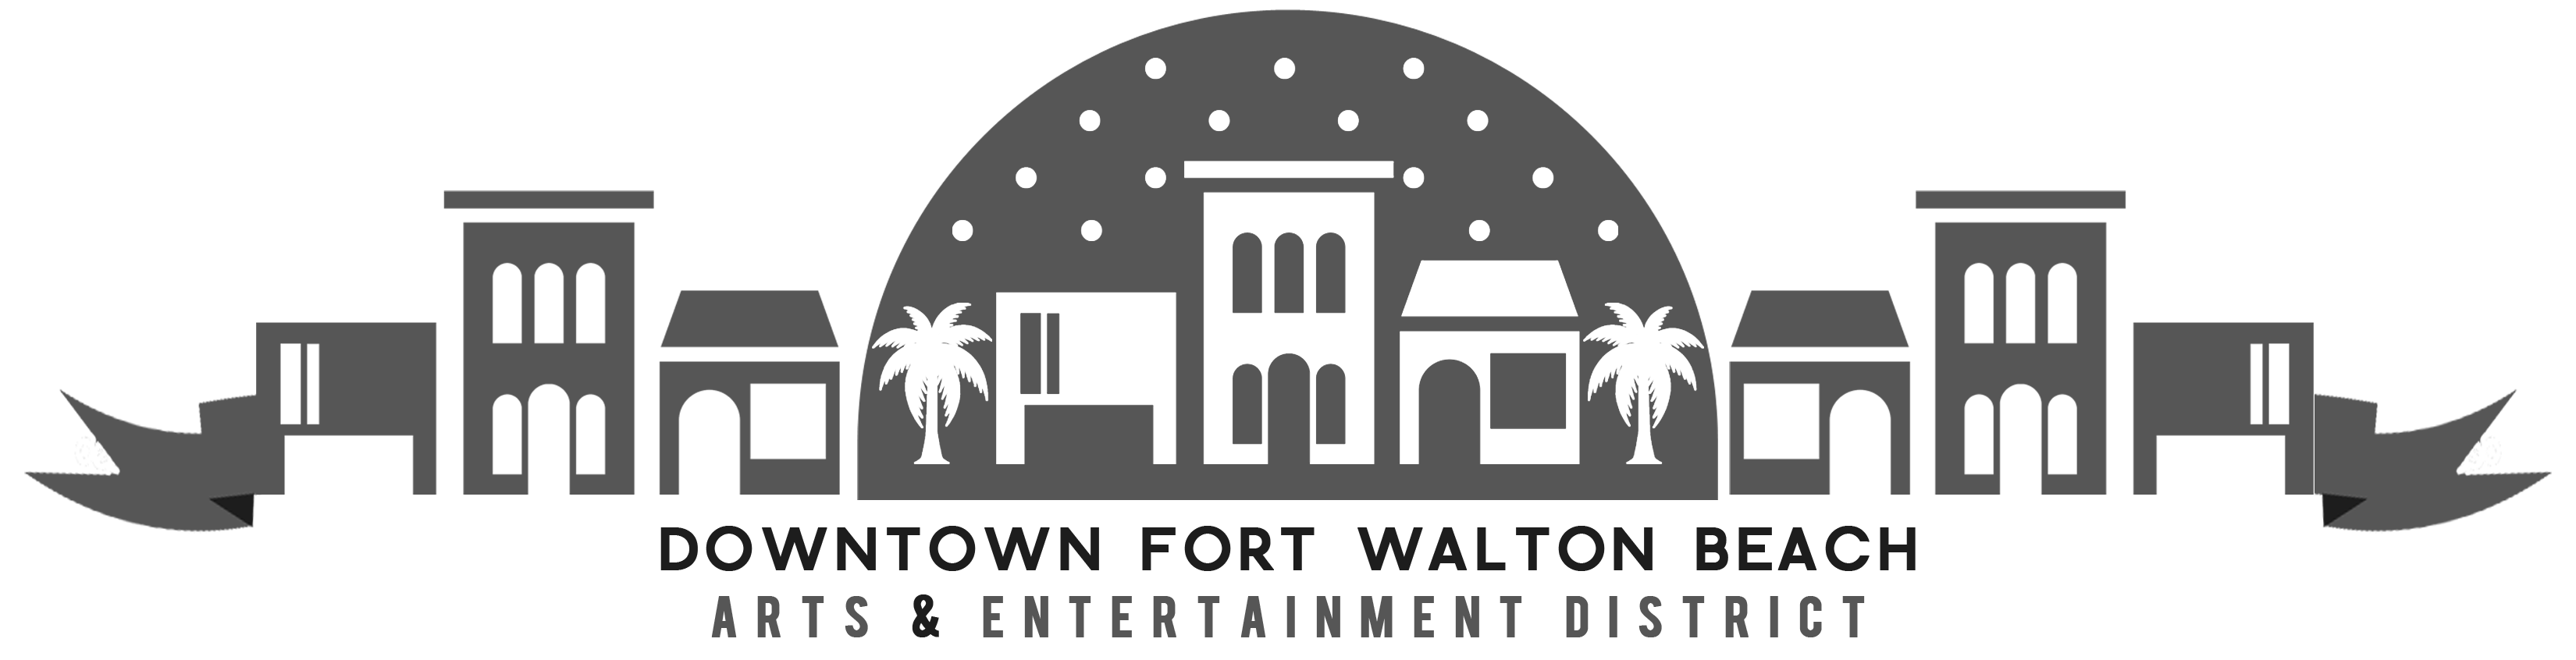 Downtown FWB Logo